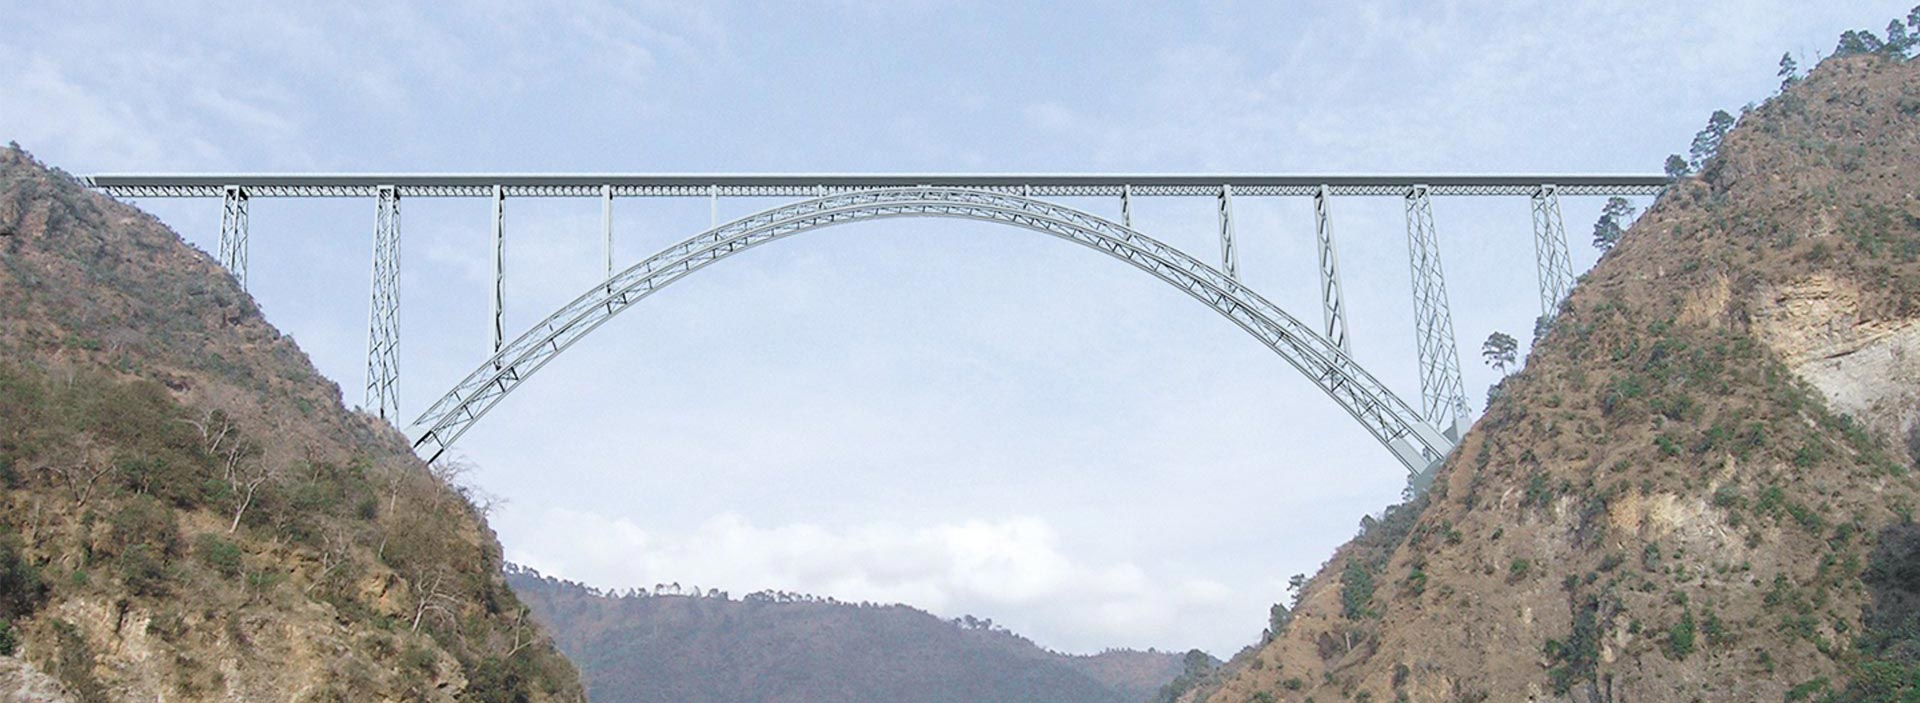 bnr-Chenab-Bridge_Transport-and-Infrastructure